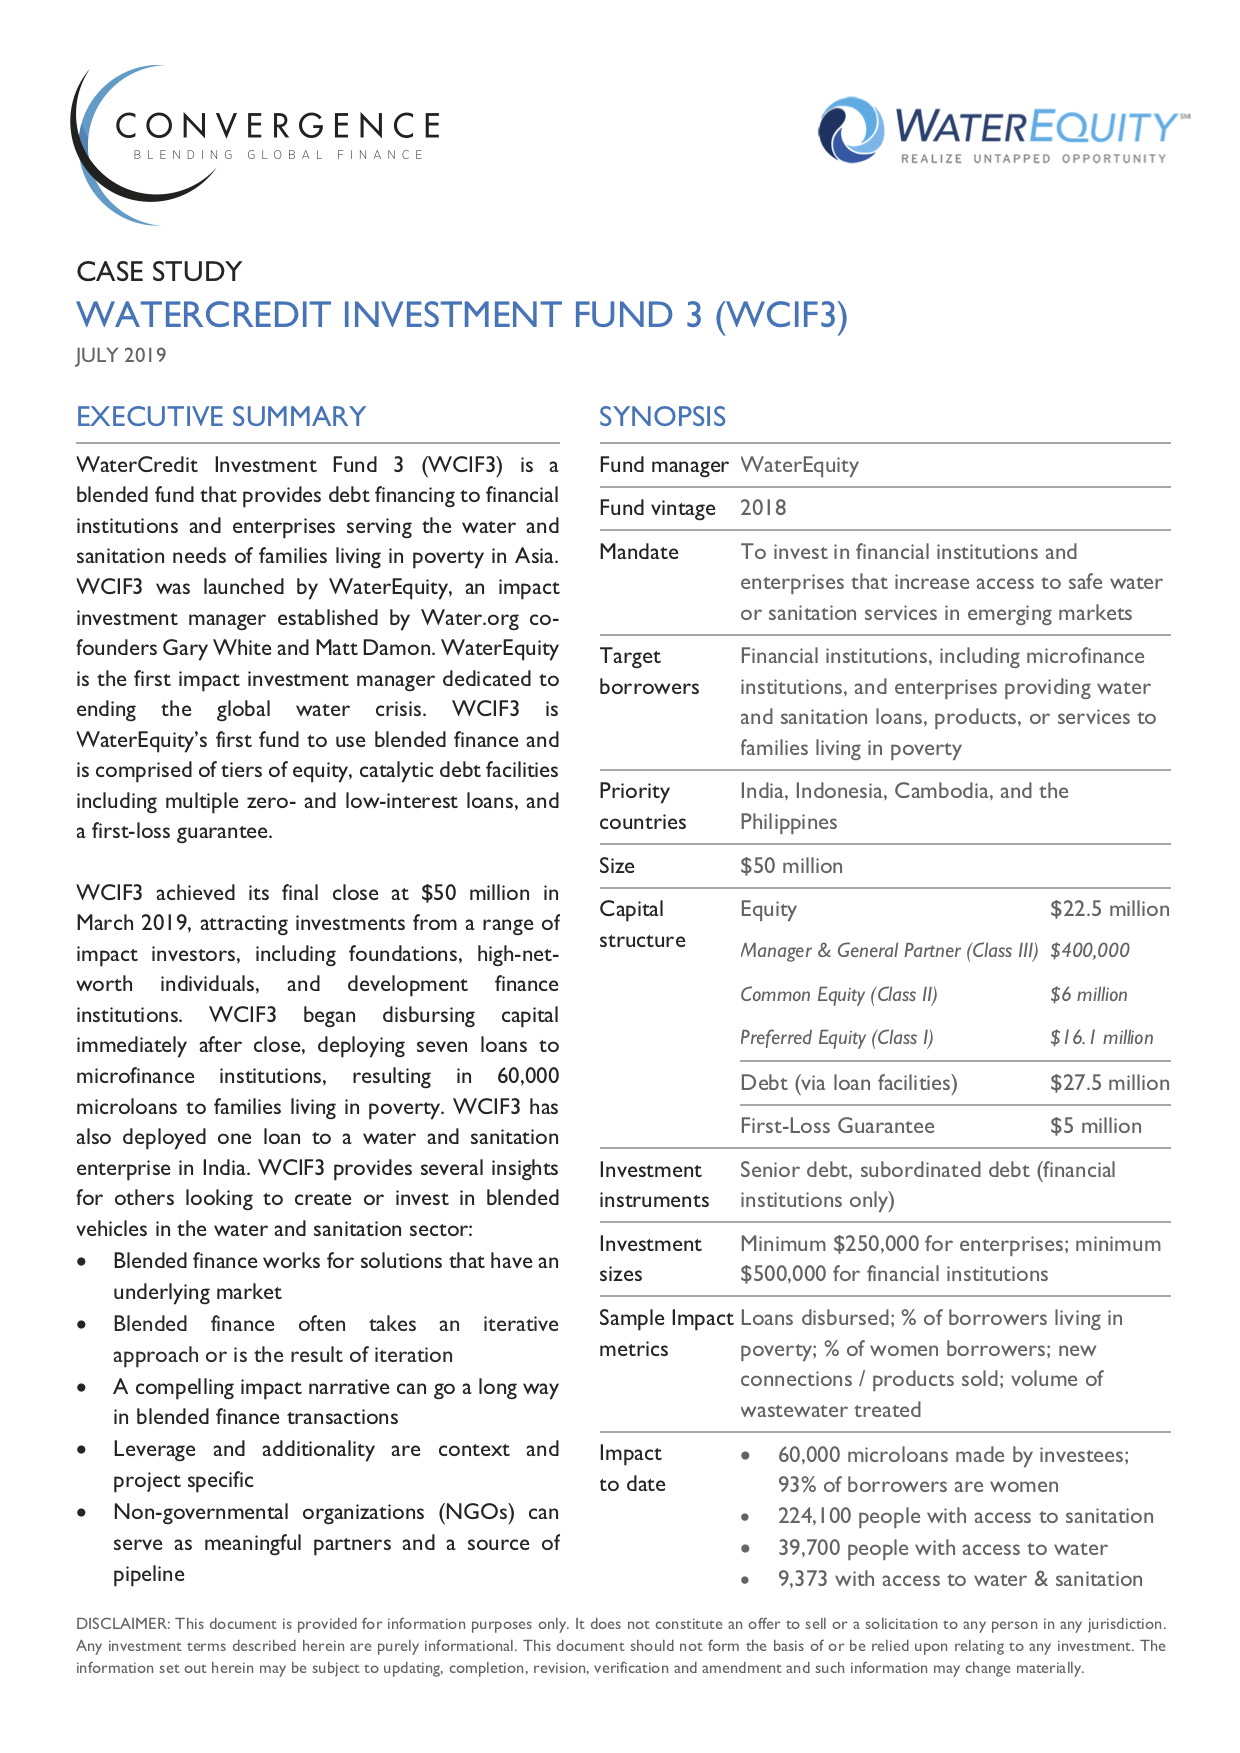 WaterCredit Investment Fund 3 Case Study